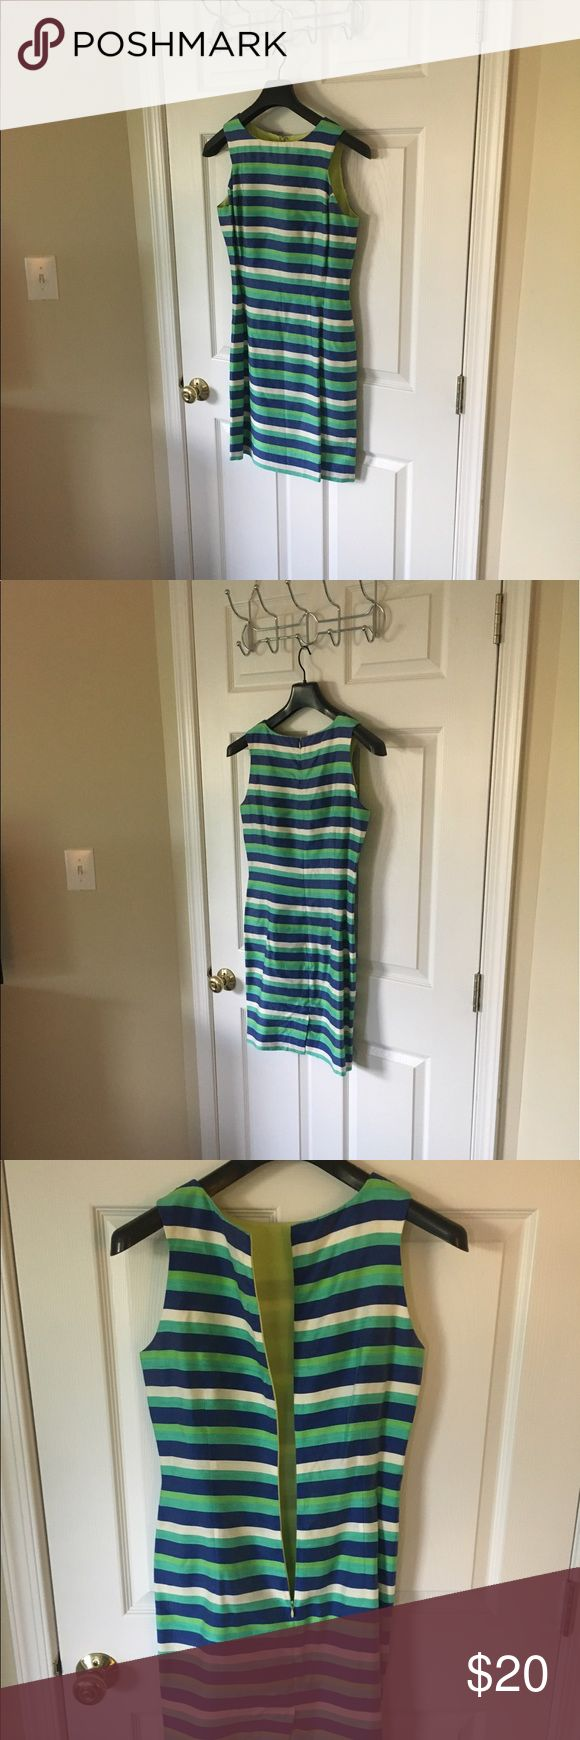 NWOT. Dana Buckman Striped Cocktail Dress. Size 4. NWOT. Dana Buckman Striped Cocktail Dress. Size 4. Blue, Green, and White Striped Dress. No marks! Purchased for a party but never worn! Dana Buchman Dresses Mini